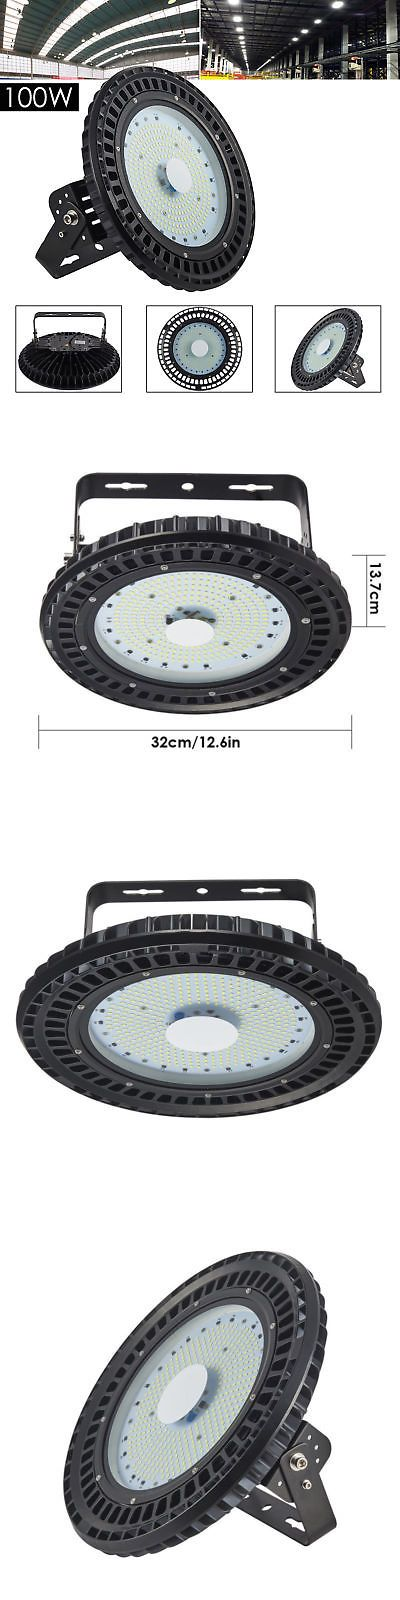 materials: 100W Ufo Led High Bay Light Factory Industrial Lamp Commercial Shed Lighting -> BUY IT NOW ONLY: $99.99 on eBay!